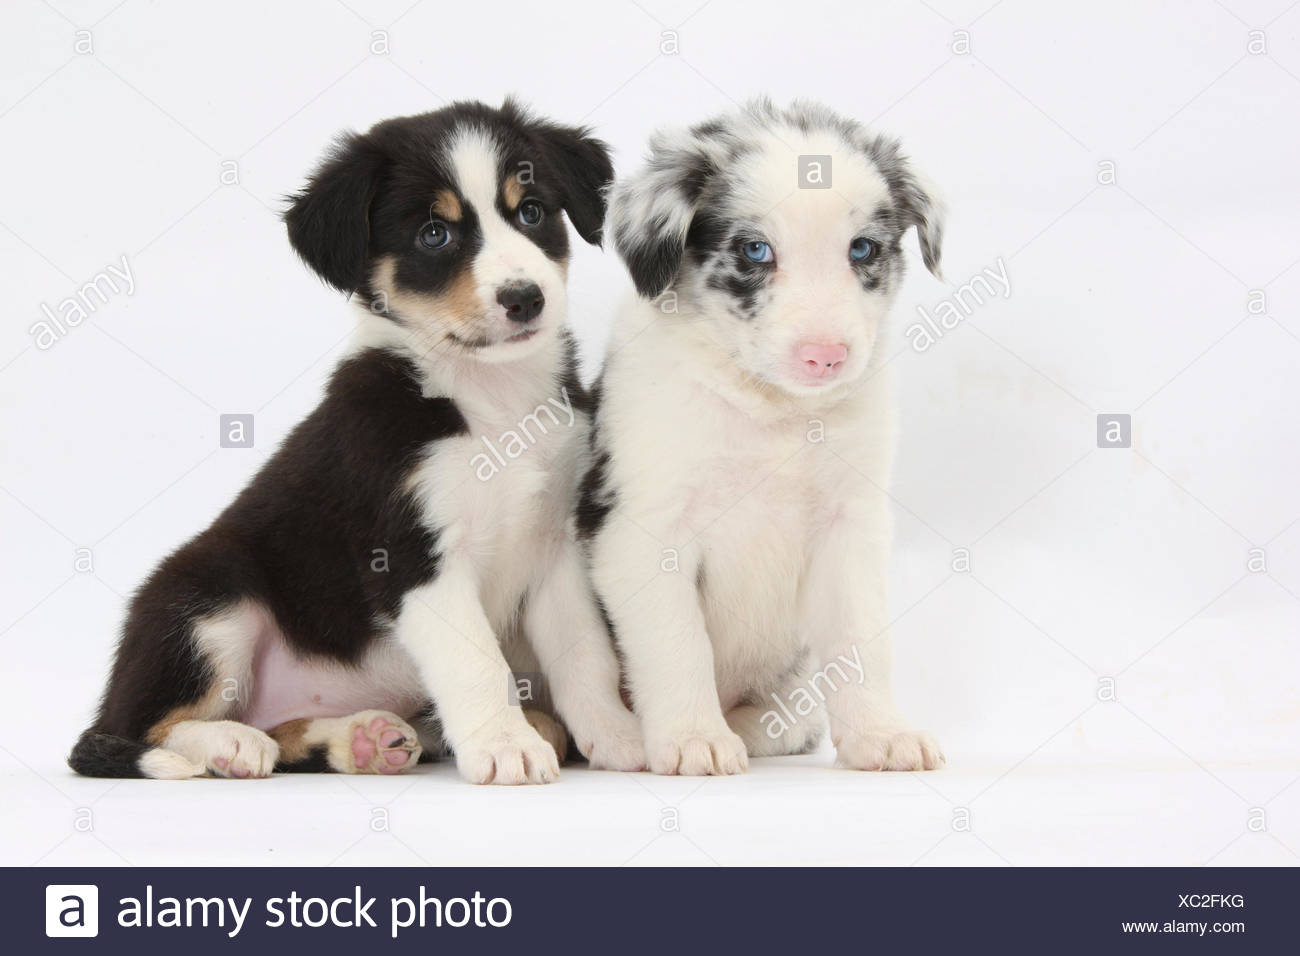 Two Border Collie Puppies Sitting Stock Photo 282797972 Alamy